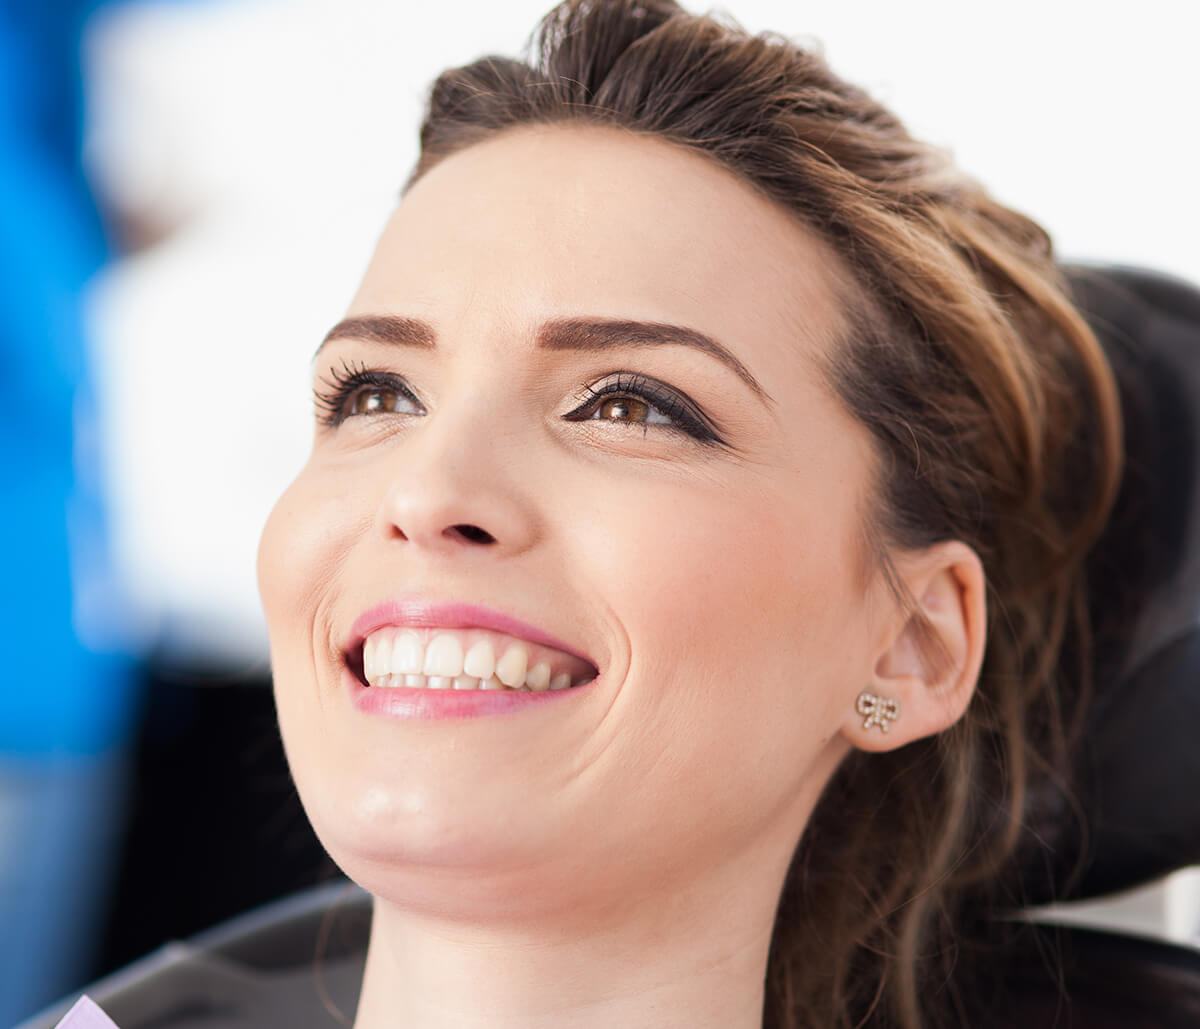 What Should You Know About CEREC Crowns in Yadkinville NC Area?